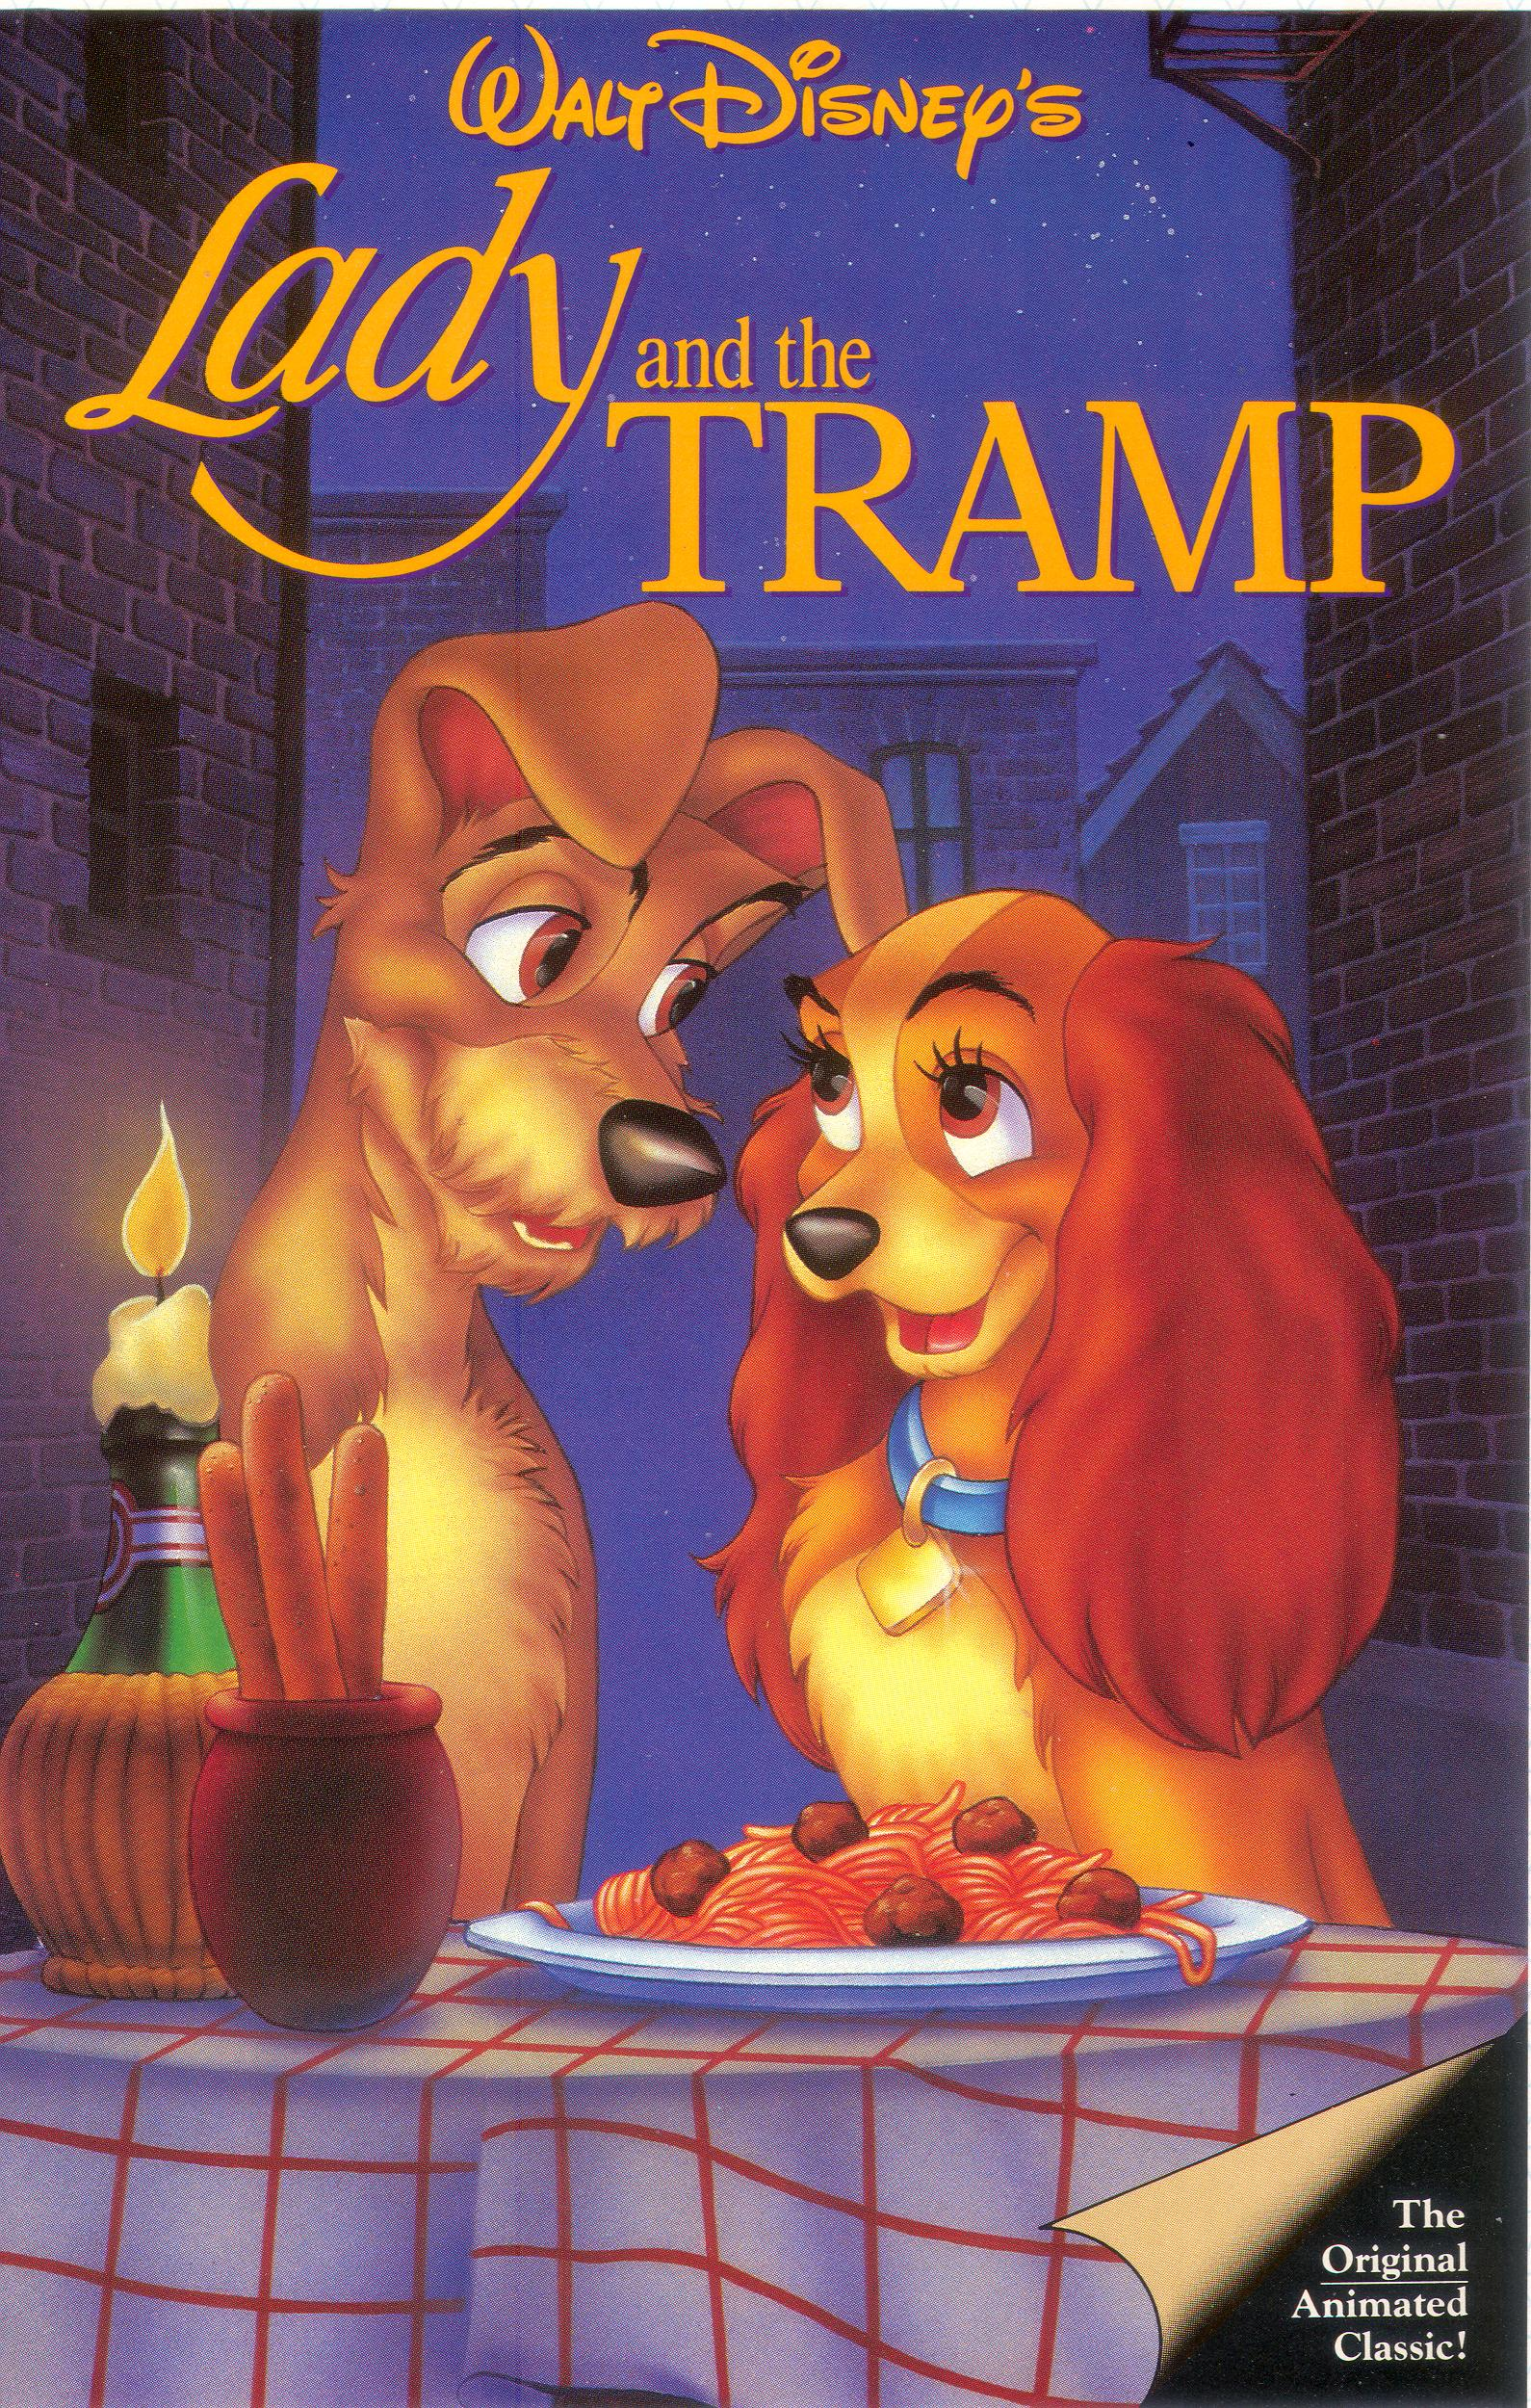 Lady and the Tramp (video)